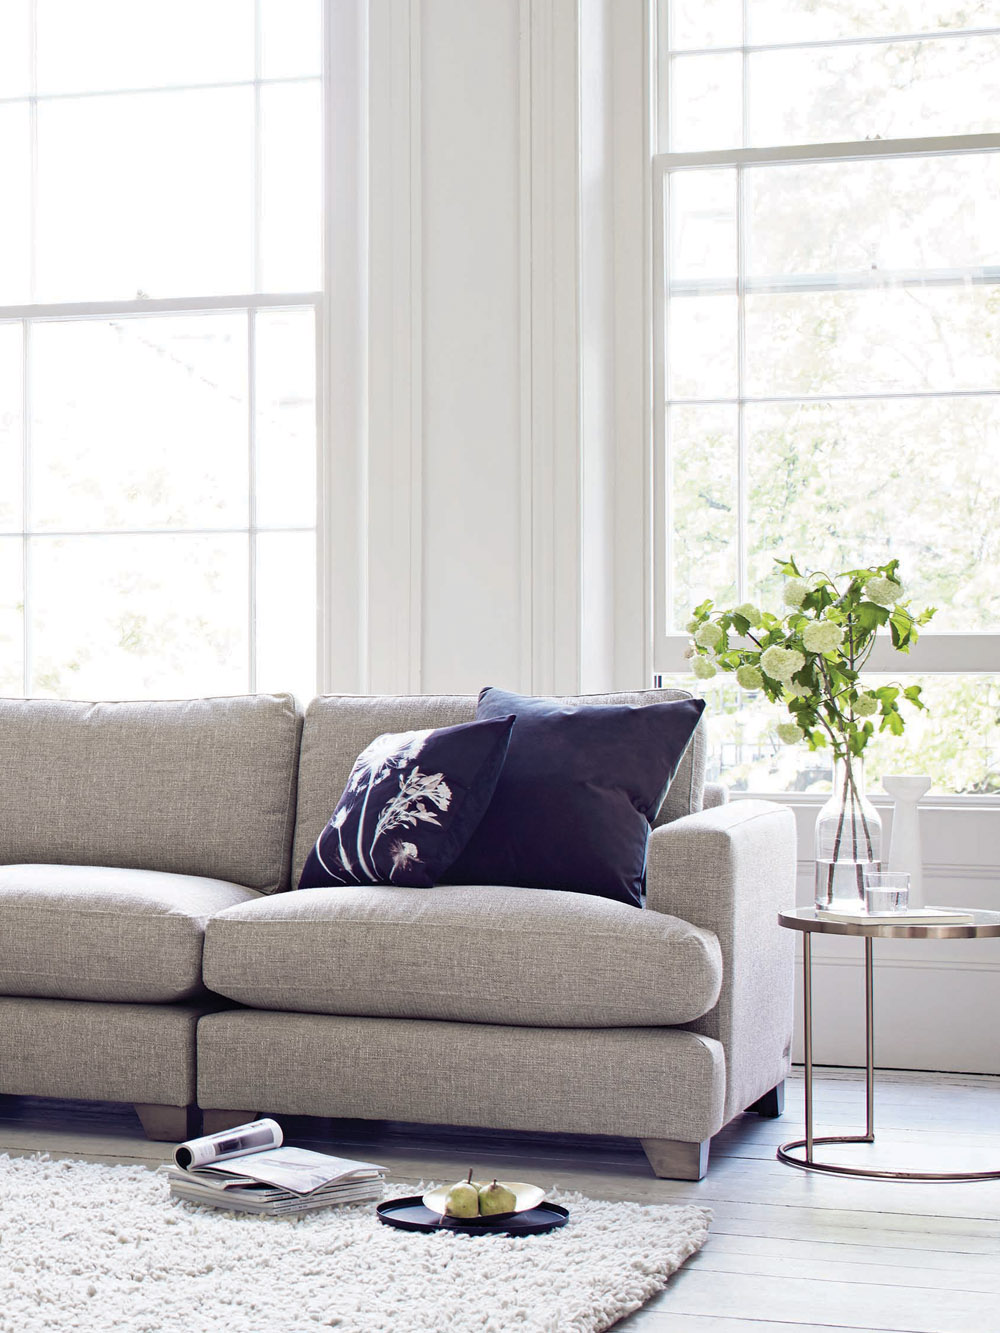 Sofa in neutral lving room